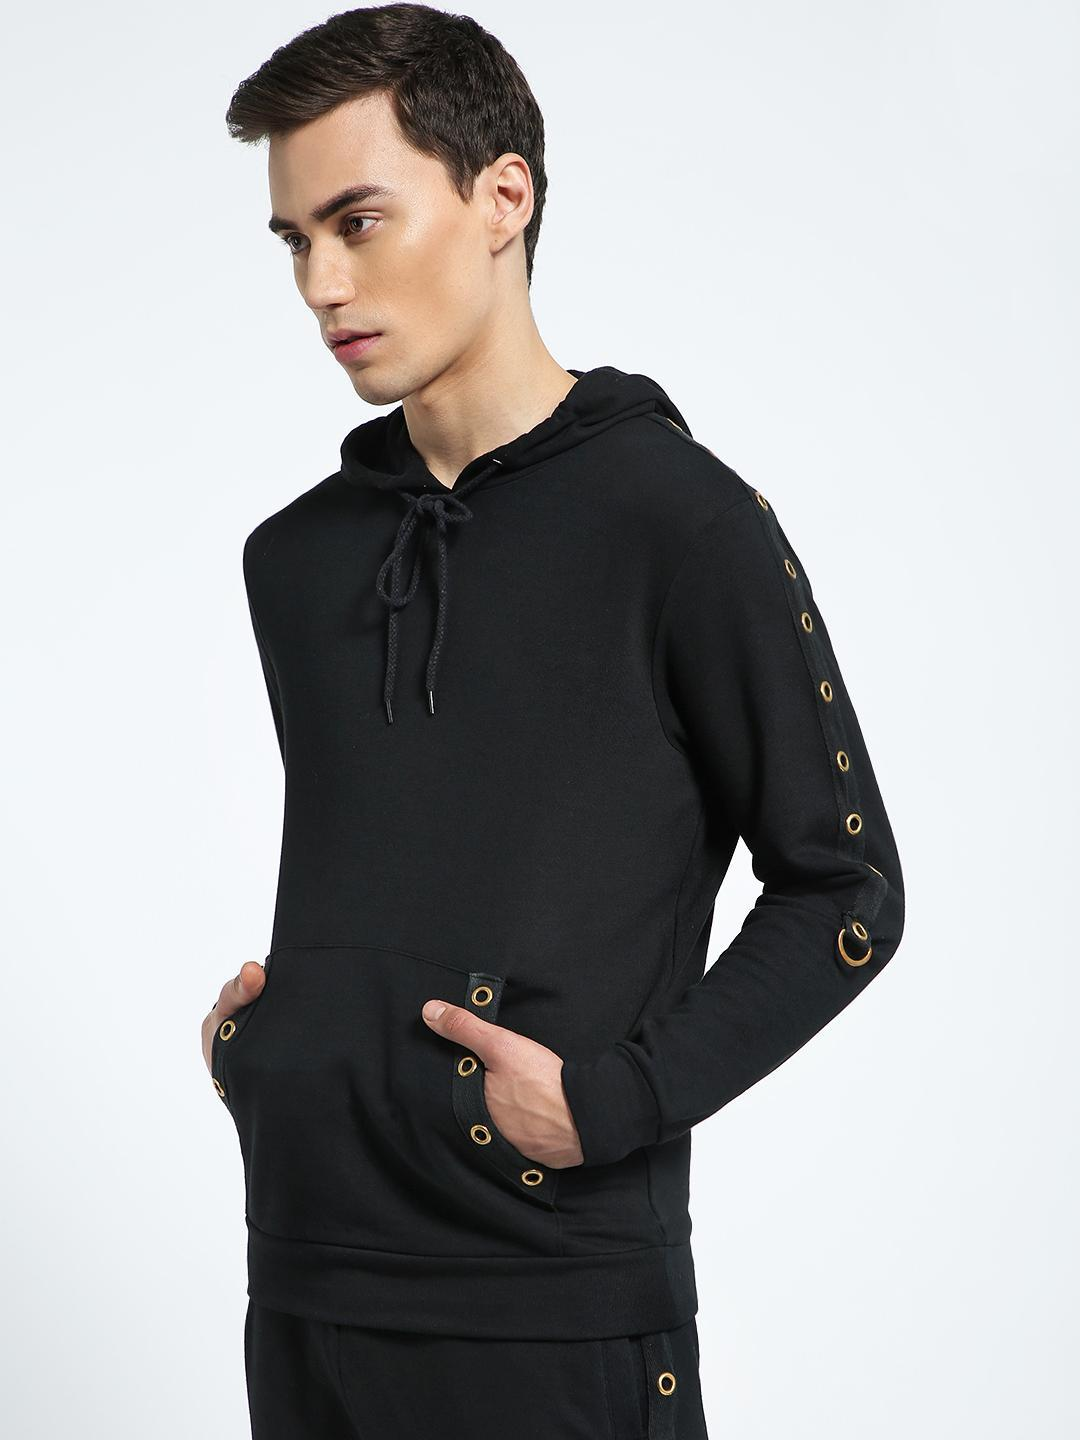 CHELSEA KING Black Eyelet Tape Kangaroo Pocket Hoodie 1